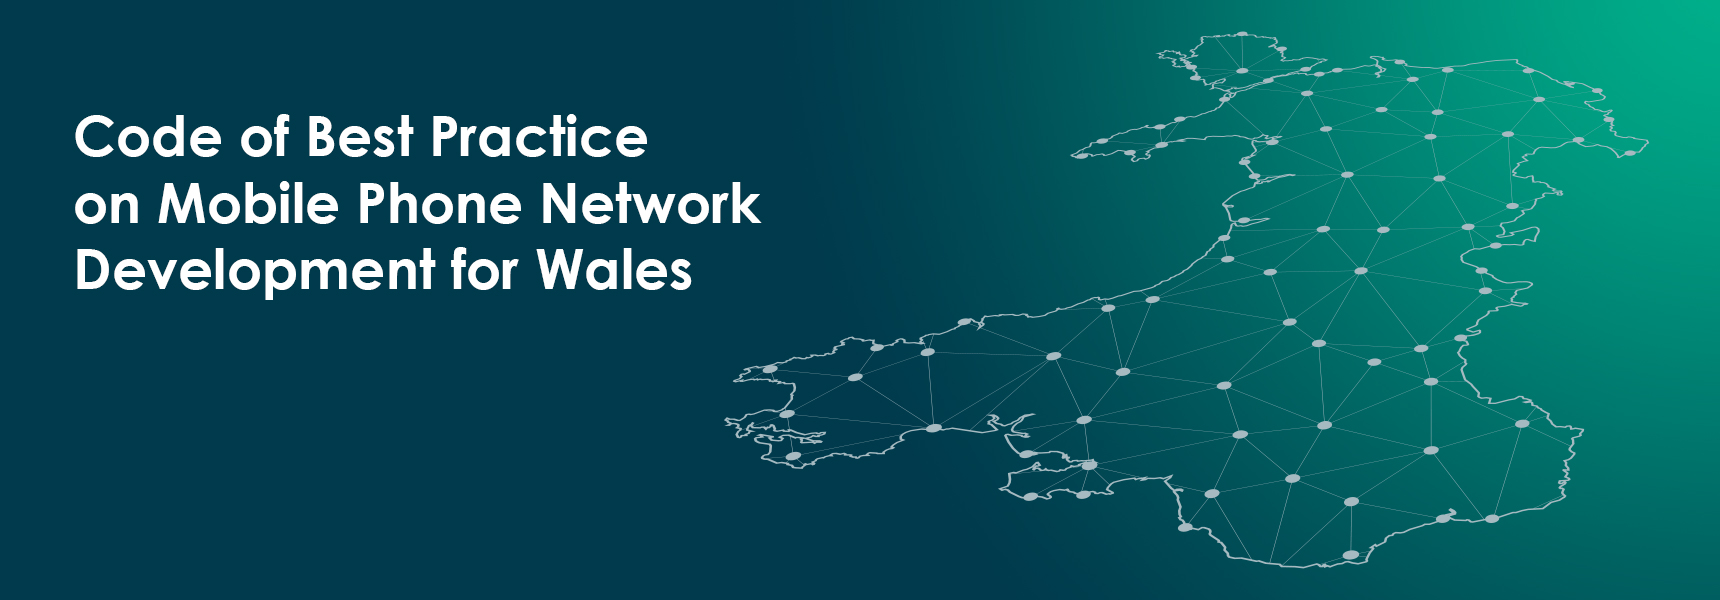 Code of Best Practice on Mobile Phone Network Development for Wales